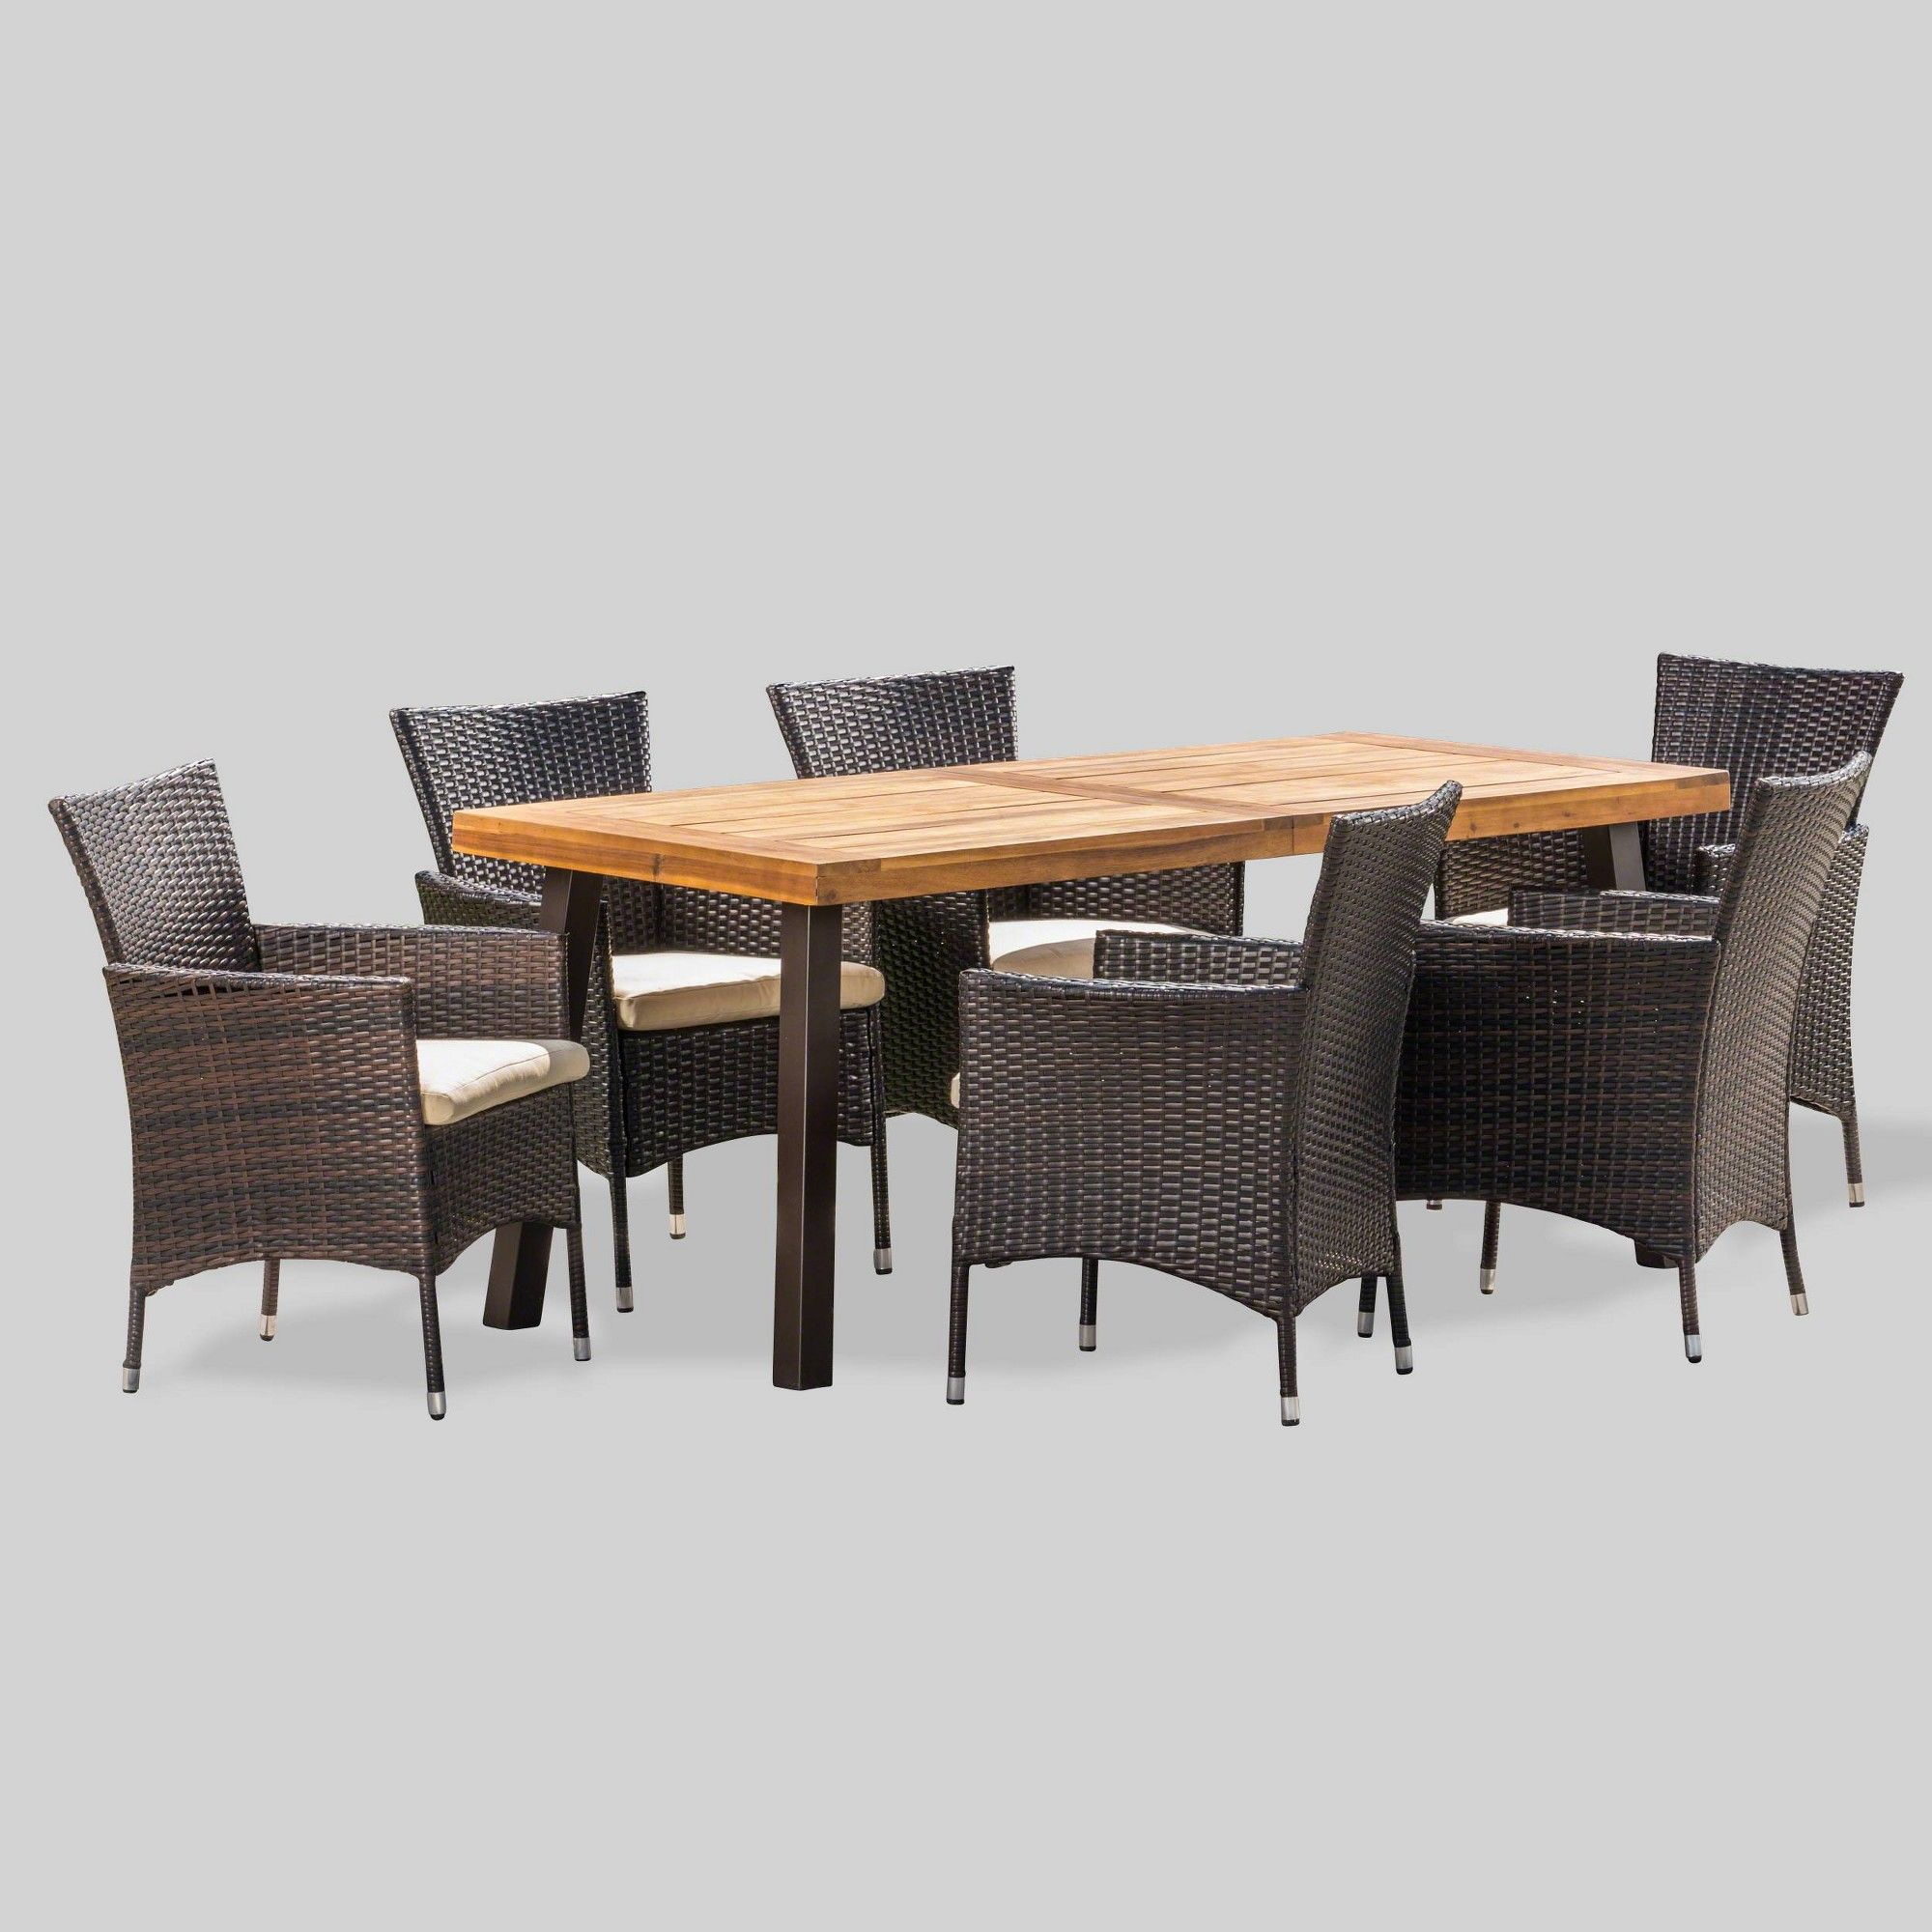 tustin 7pc acacia wood and wicker dining set brown beige rh pinterest com